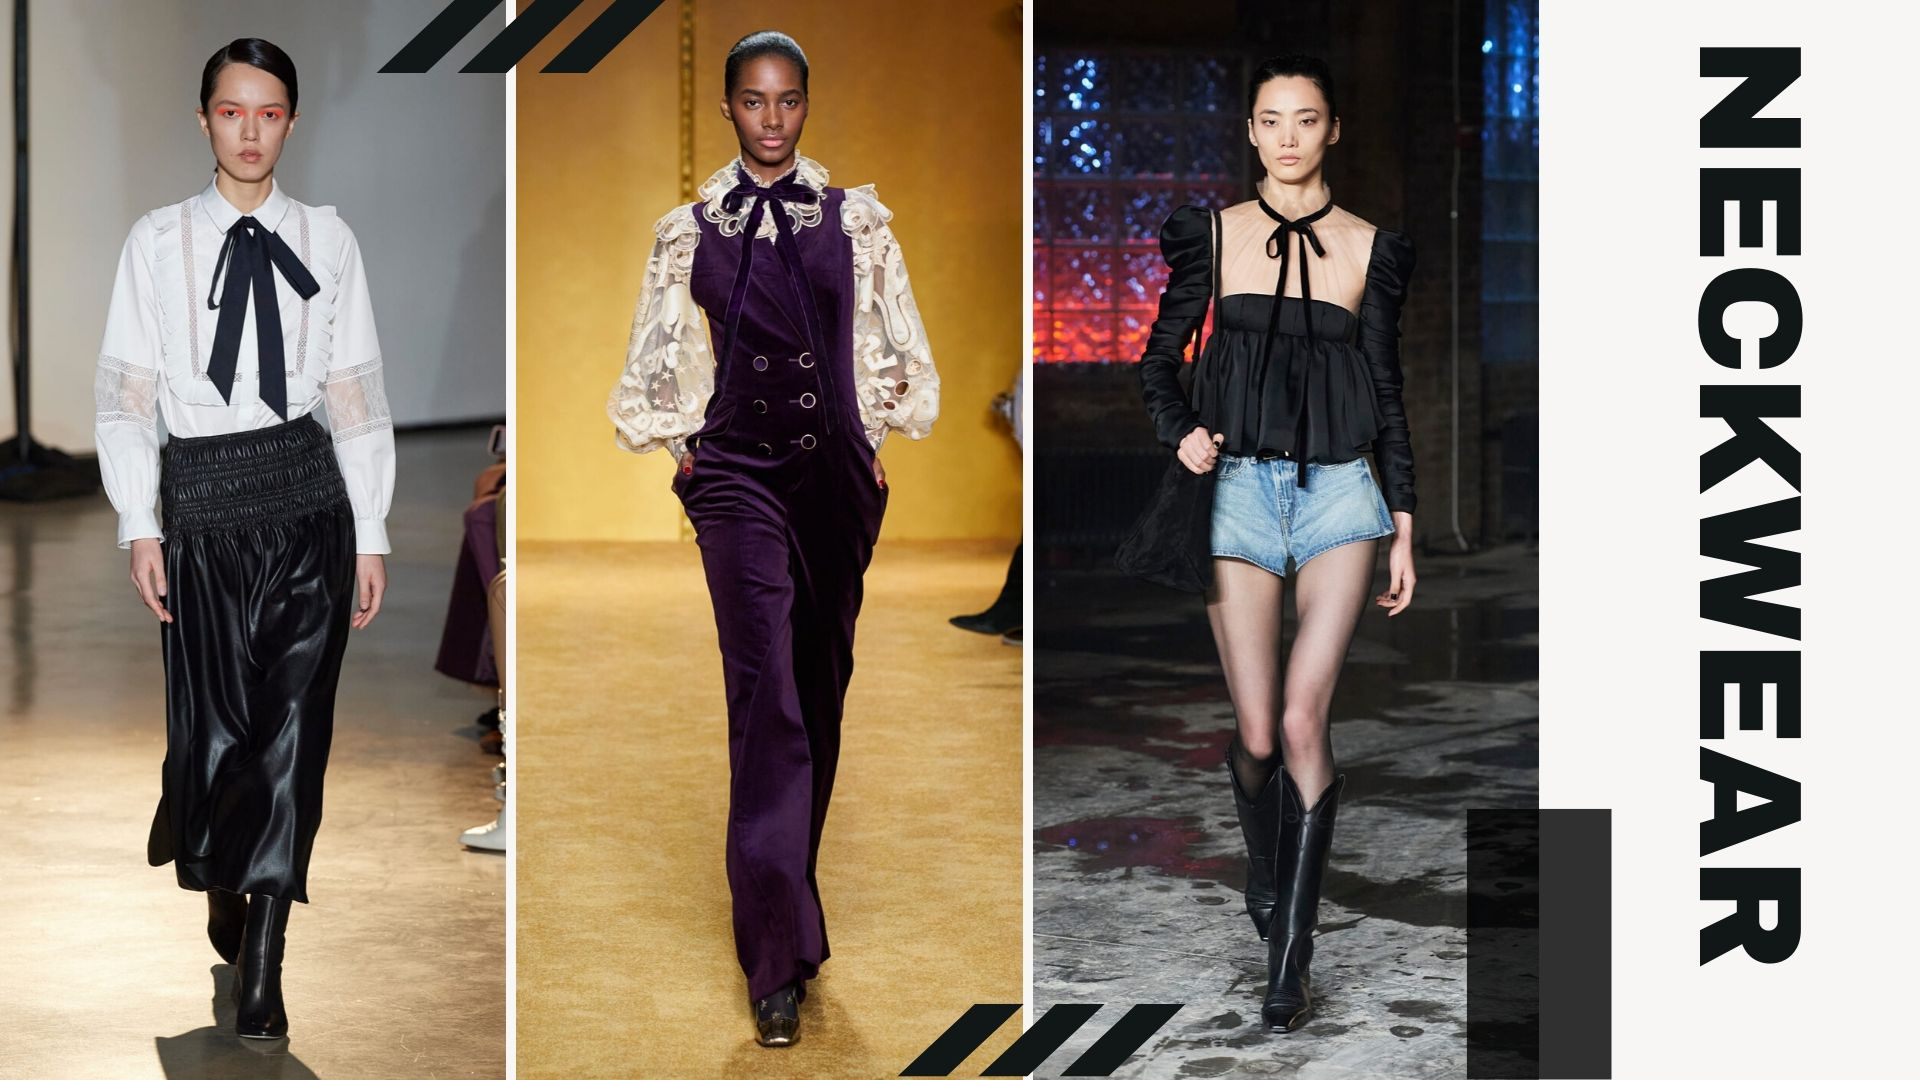 Top 5 trends from New York Fashion Week Fall/Winter 2020 - Neckwear